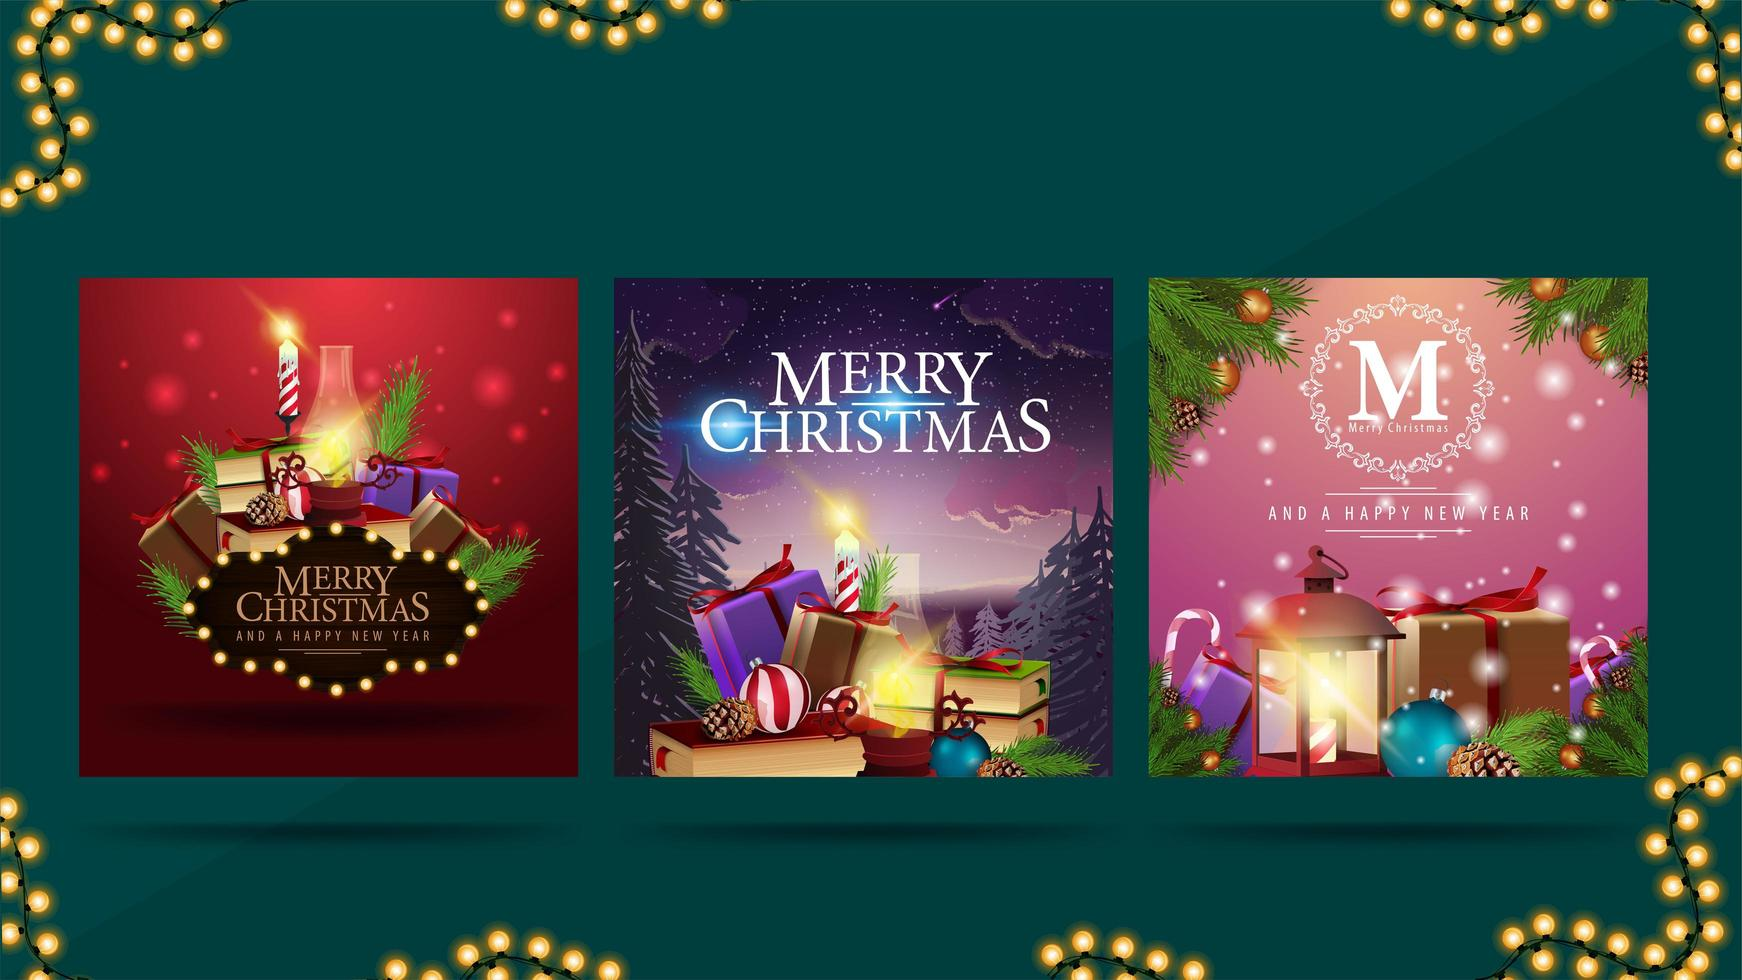 Merry Christmas, collection of Christmas postcards with pile of Christmas presents ready for print. Bright modern Christmas cards vector